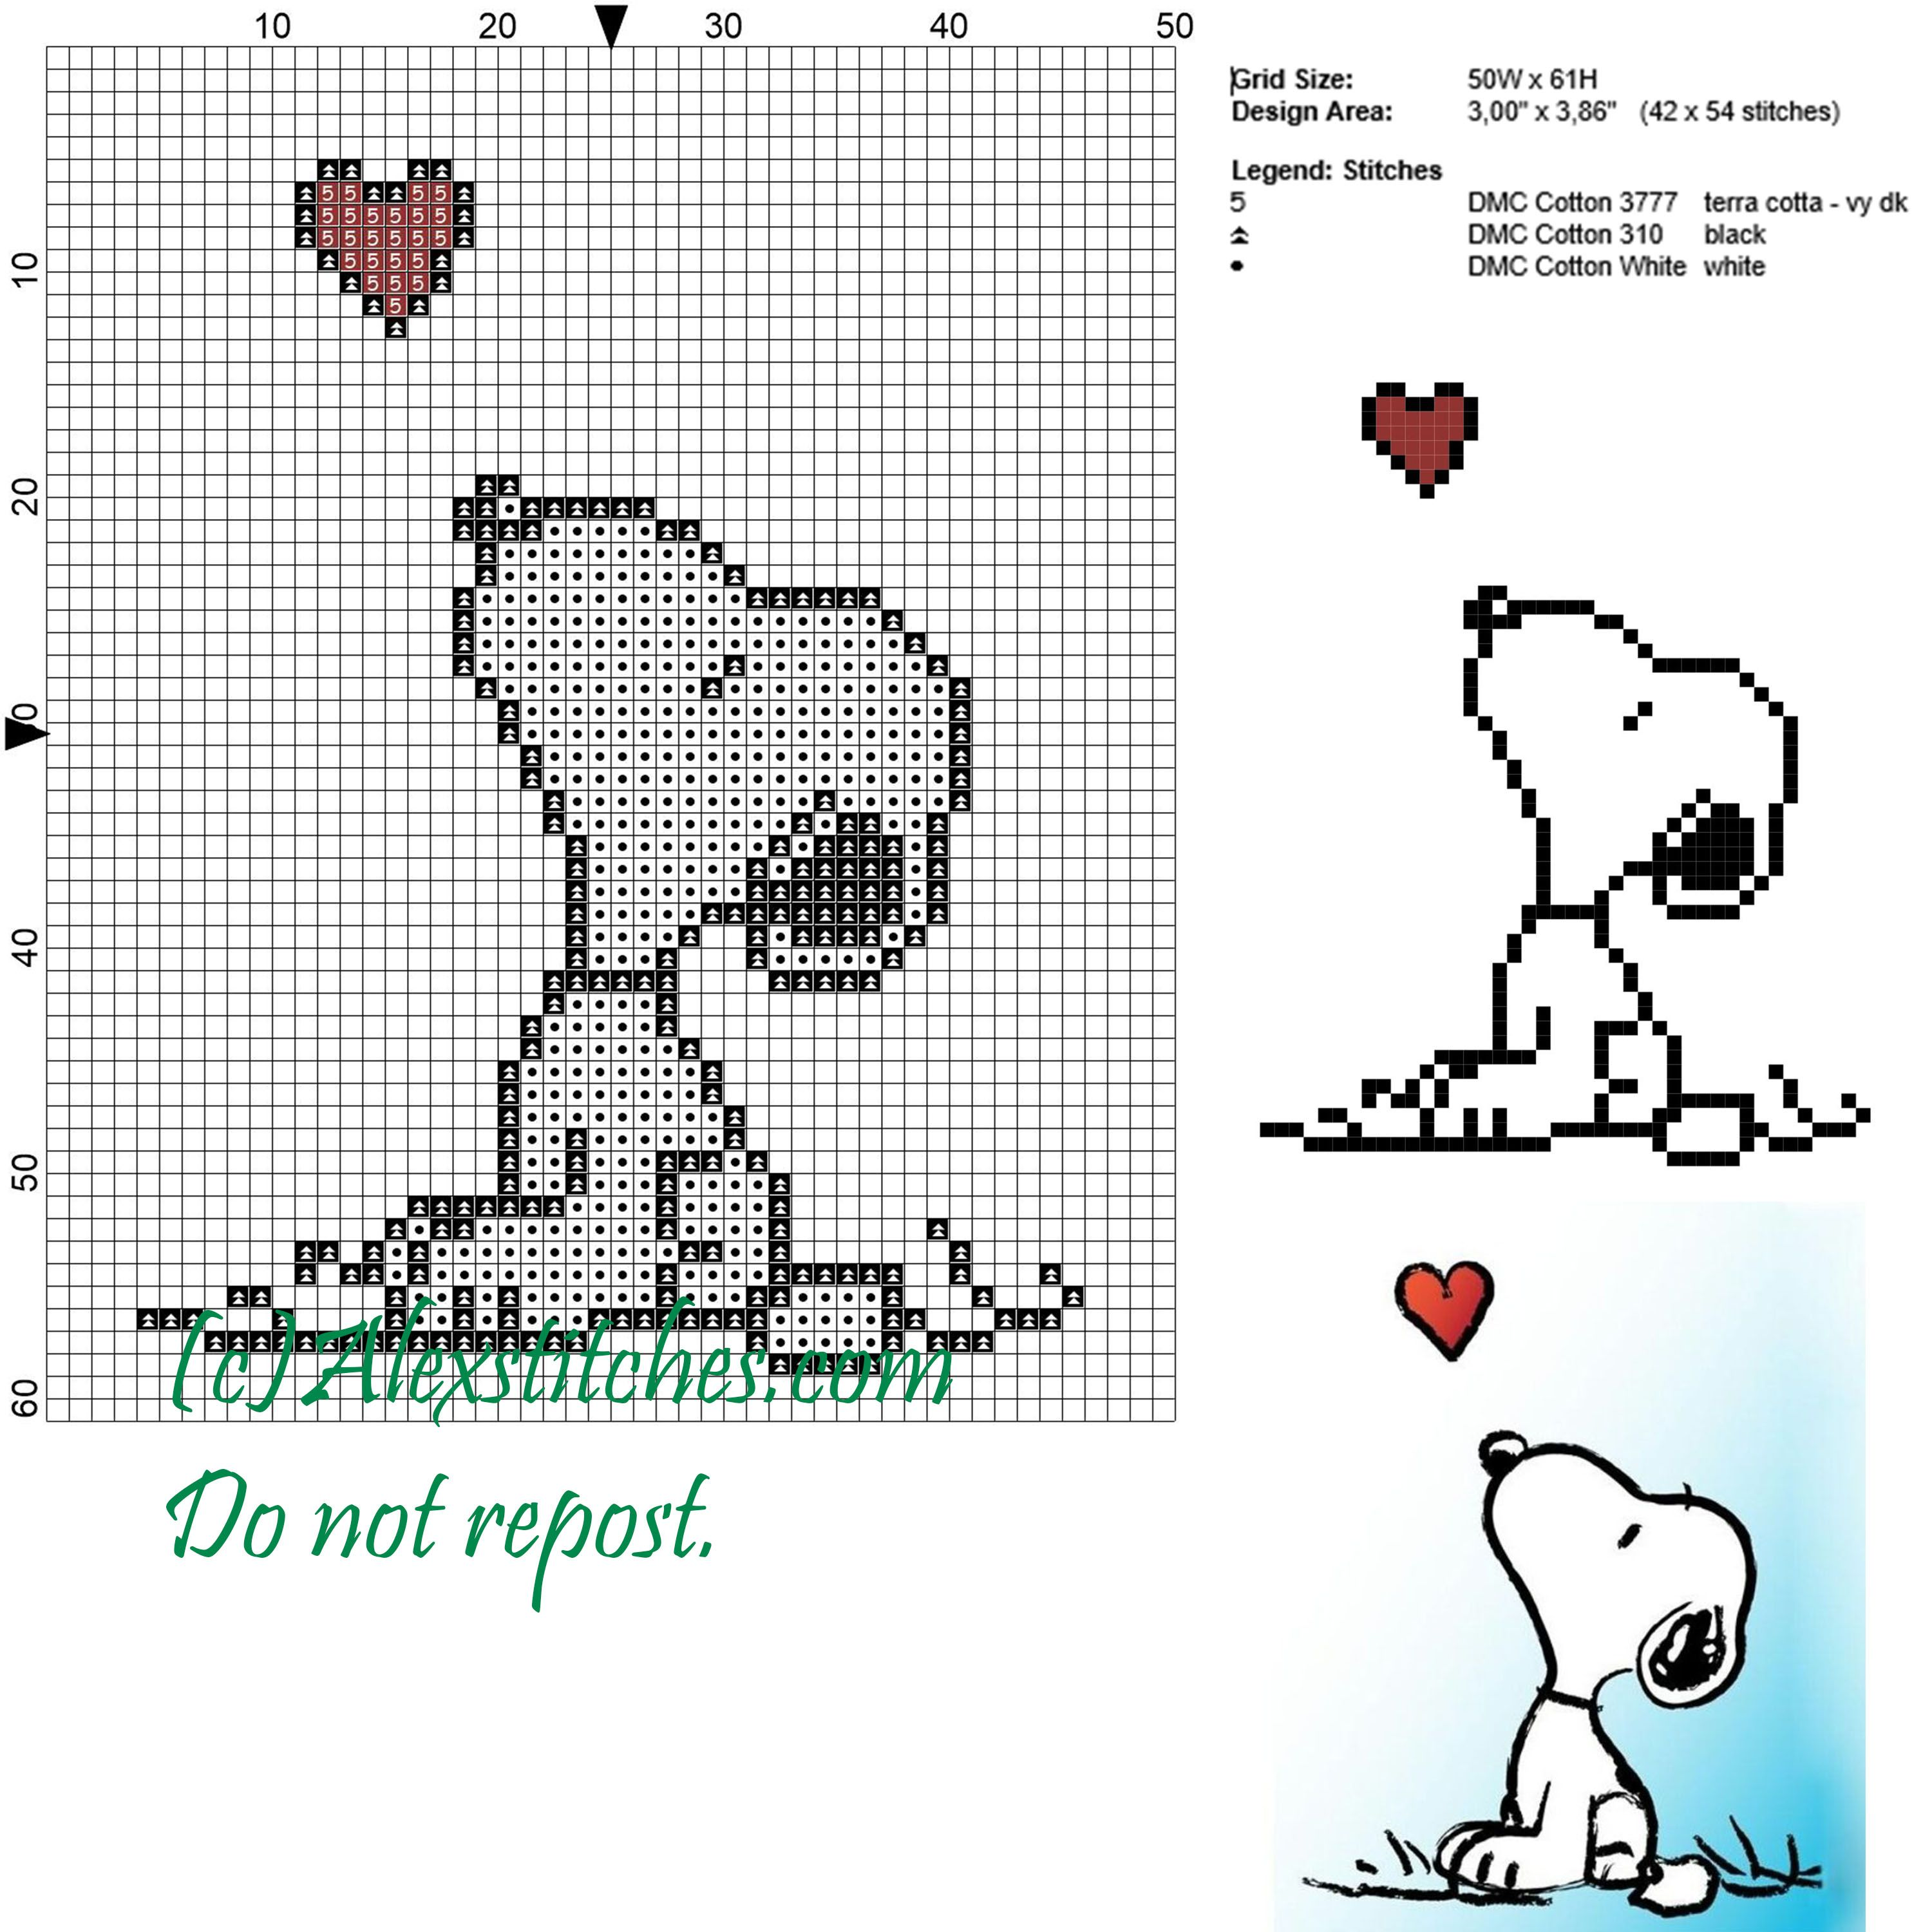 Snoopy and the heart cross stitch pattern 50x62 3 colors ...